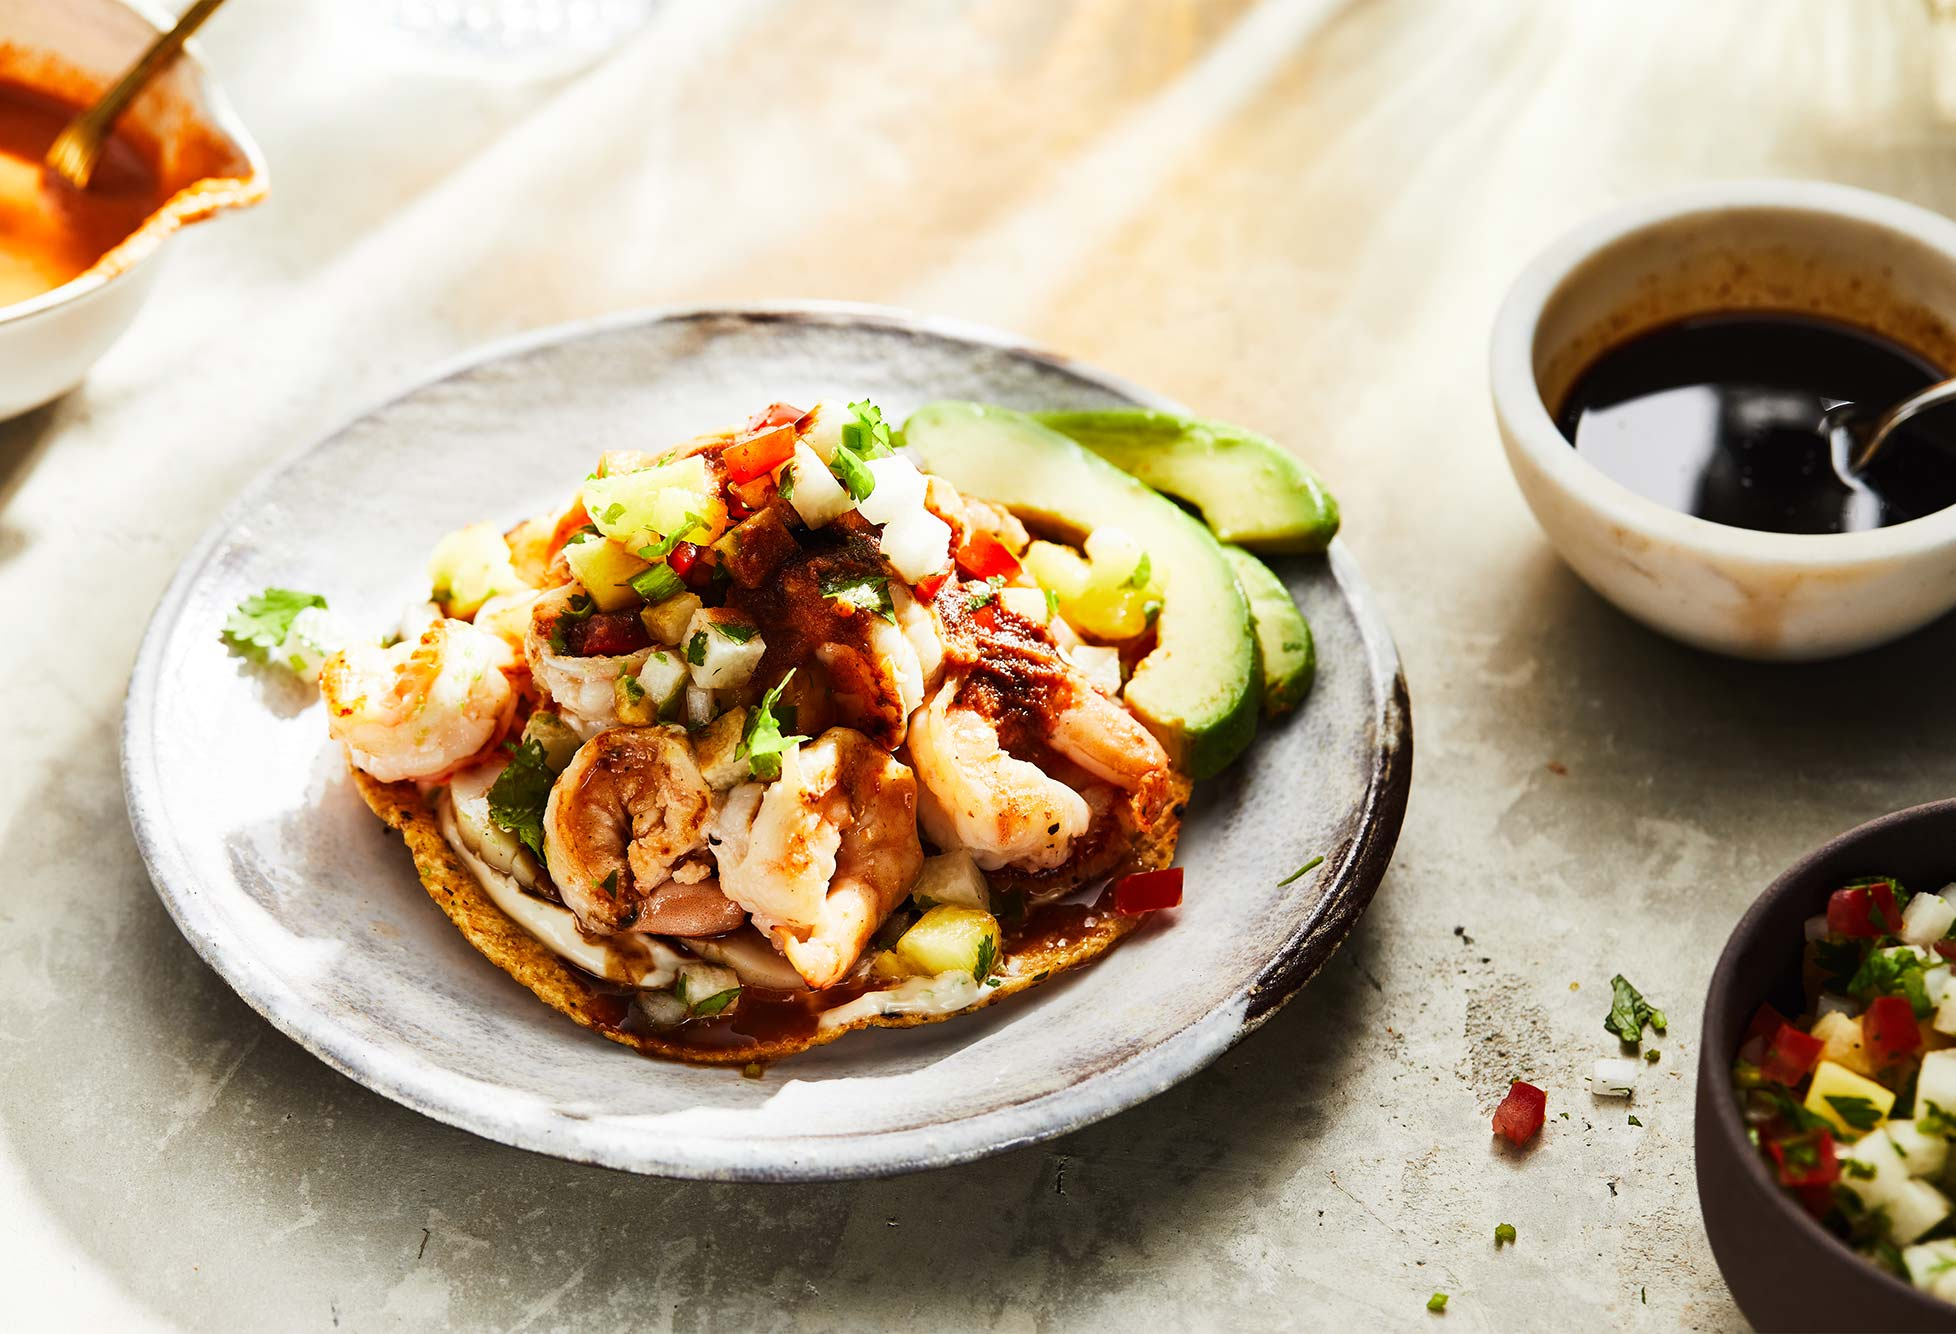 Sonoran Style Shrimp and Scallop Tostada